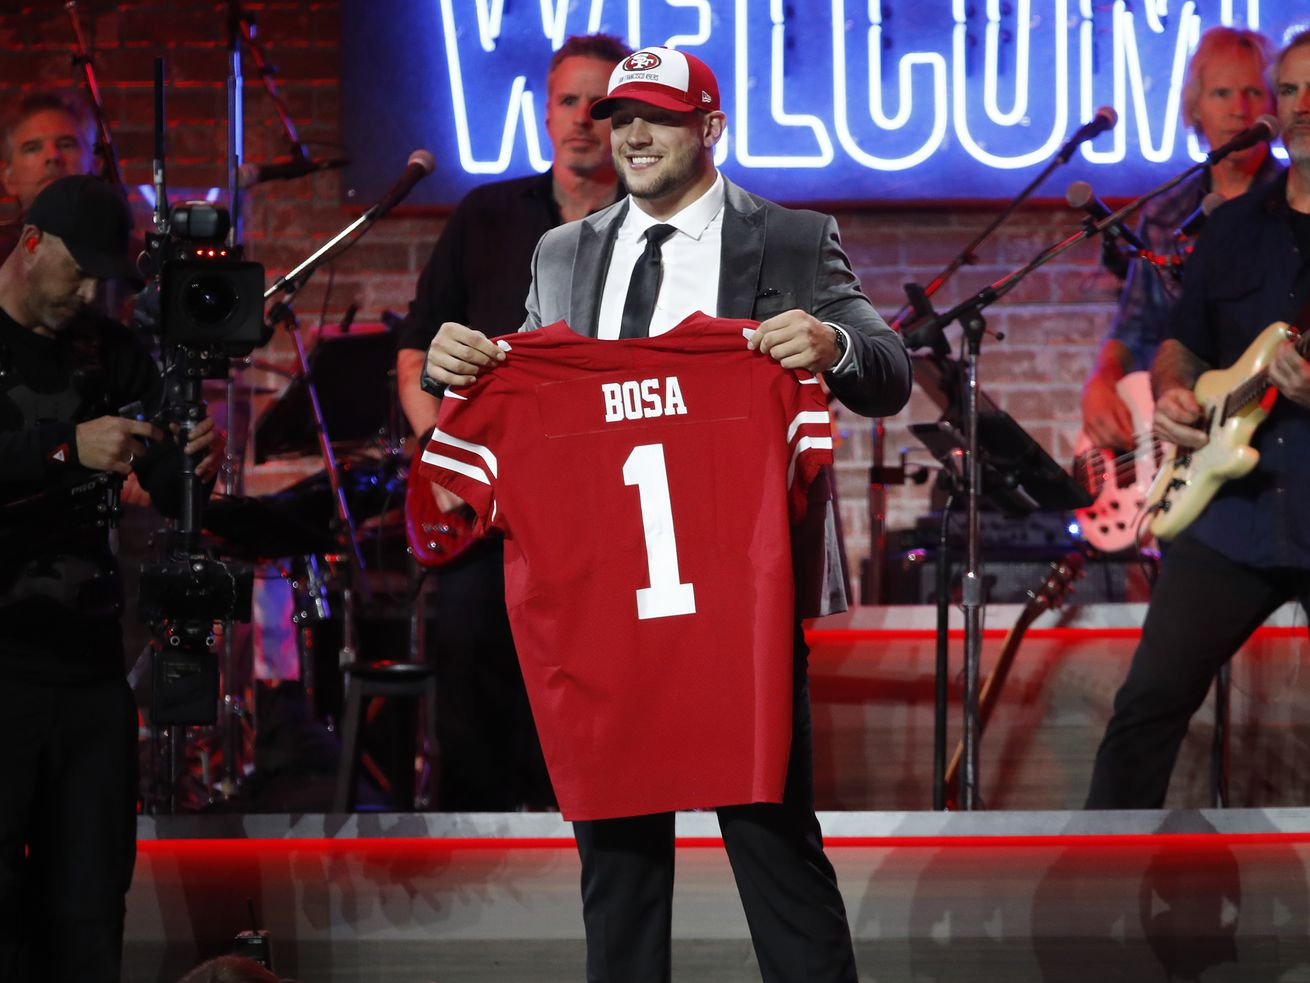 Nick Bosa with his 49ers jersey.